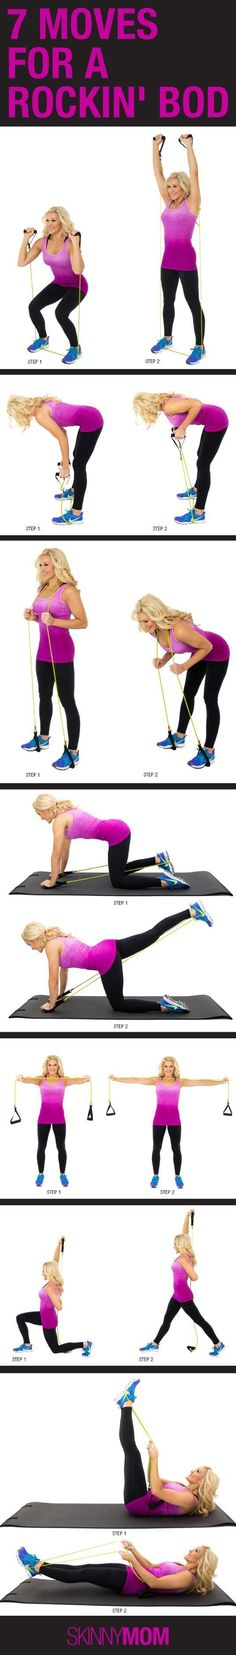 Get a full body workout with only one piece of equipment. These resistance band exercises will get you toned and tight!